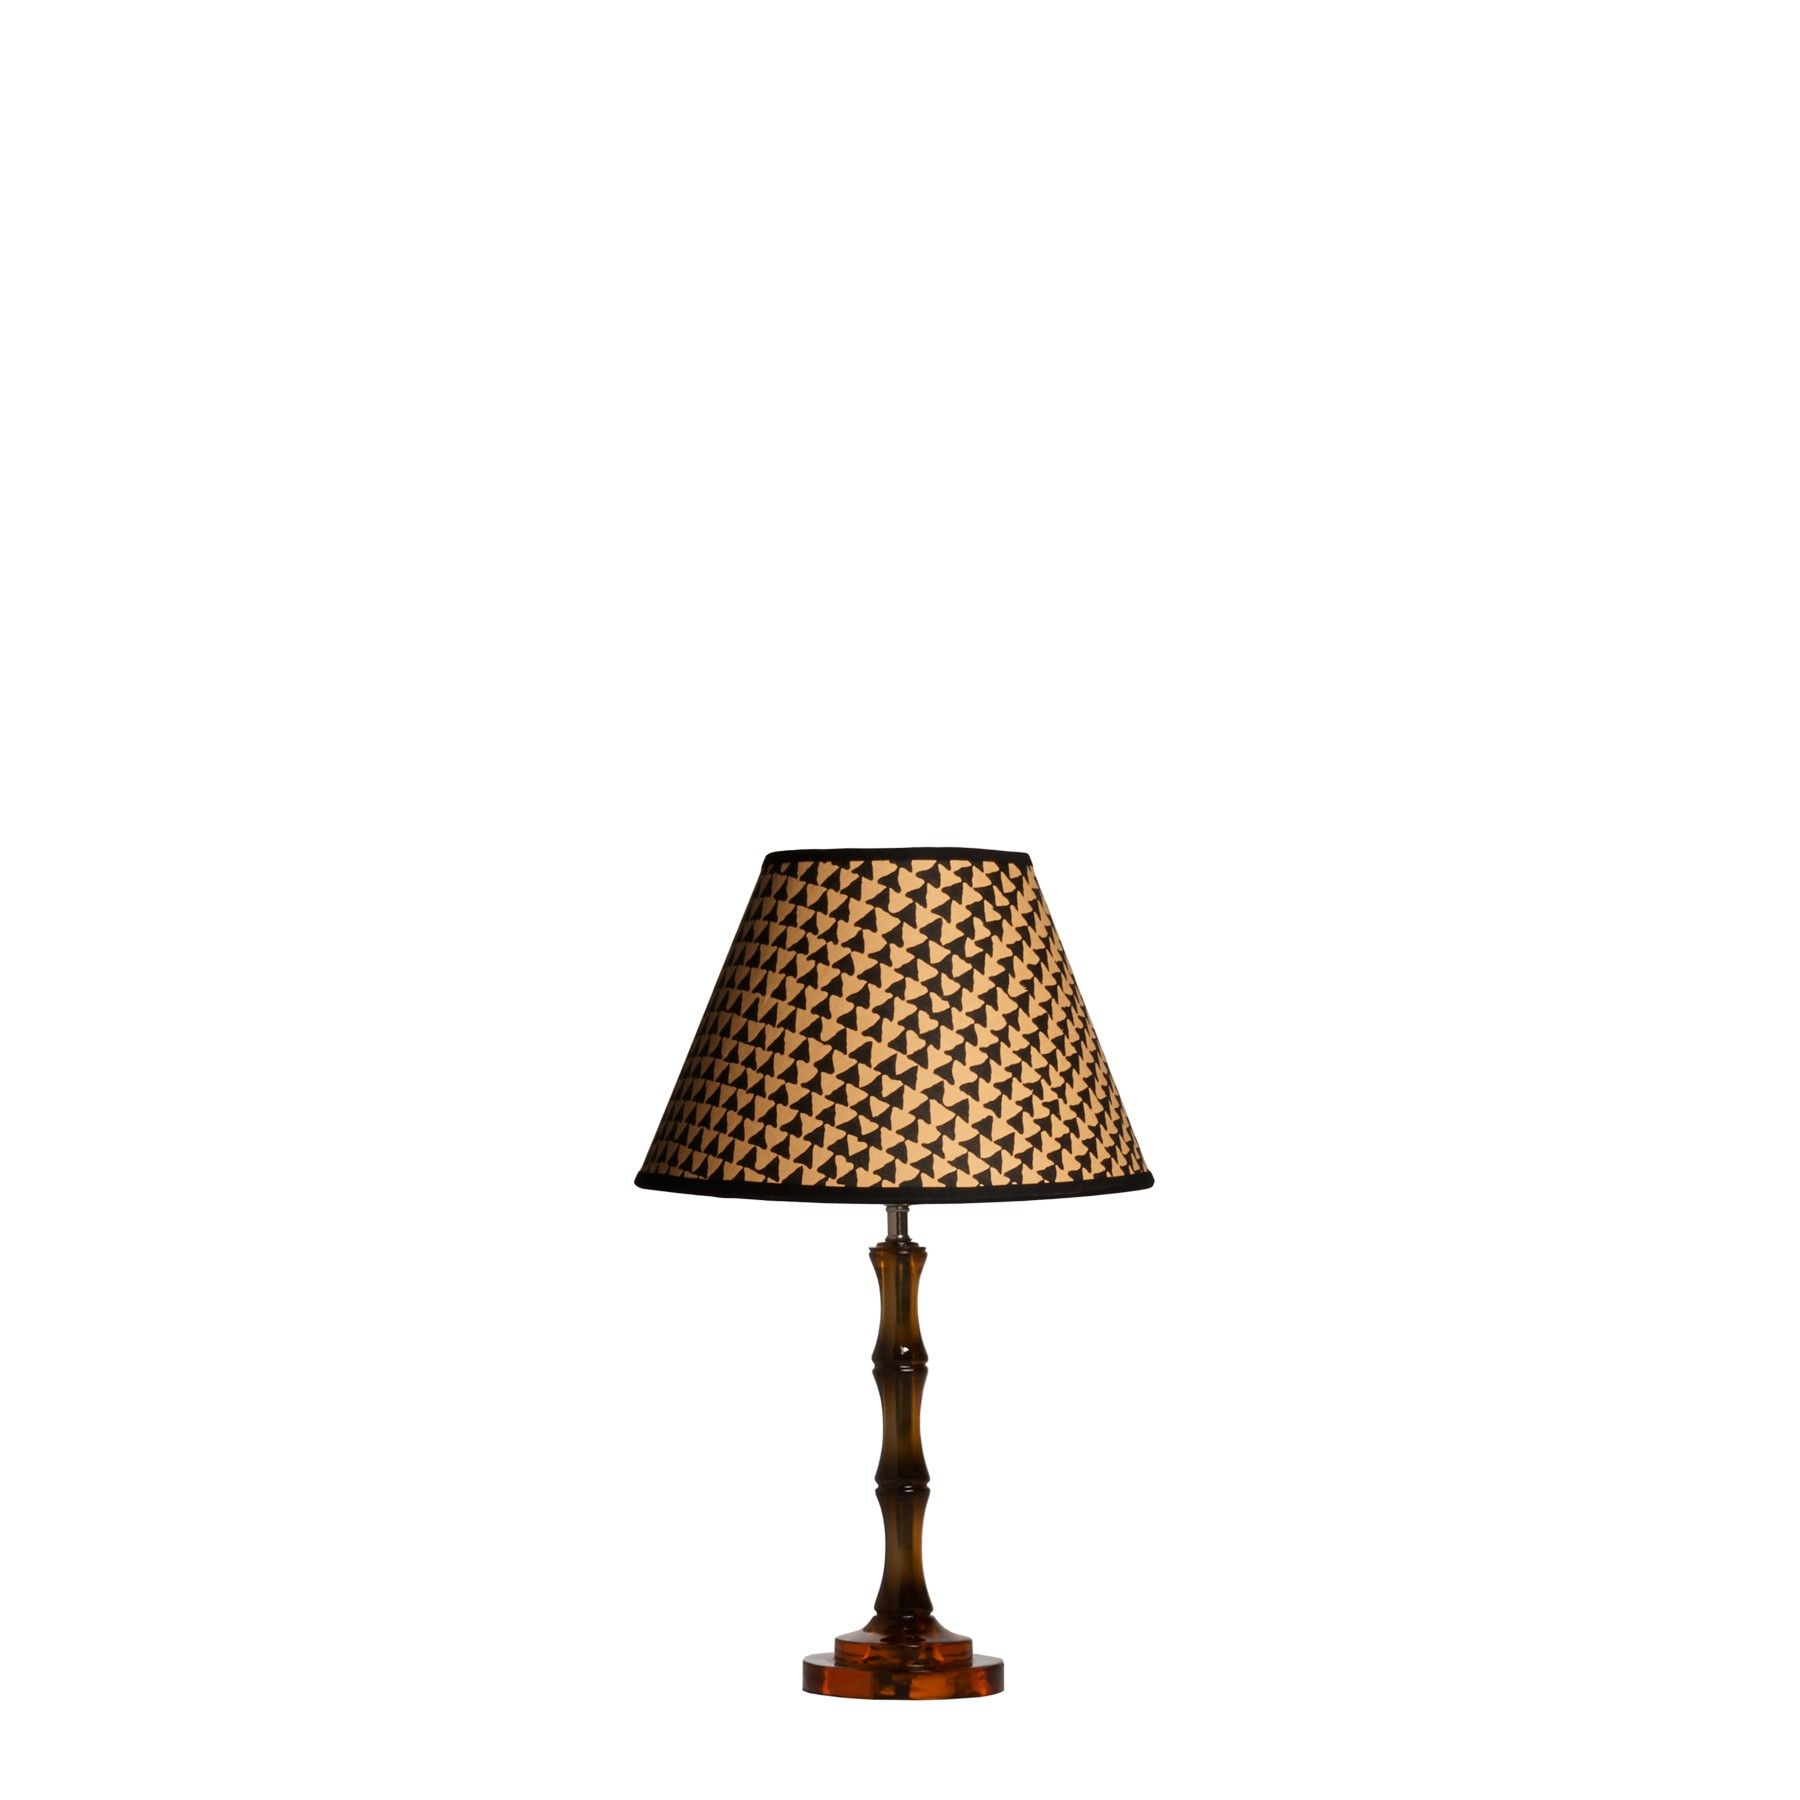 Bamboo Table Lamp In Amber Polished Resin Table Lamp Bamboo